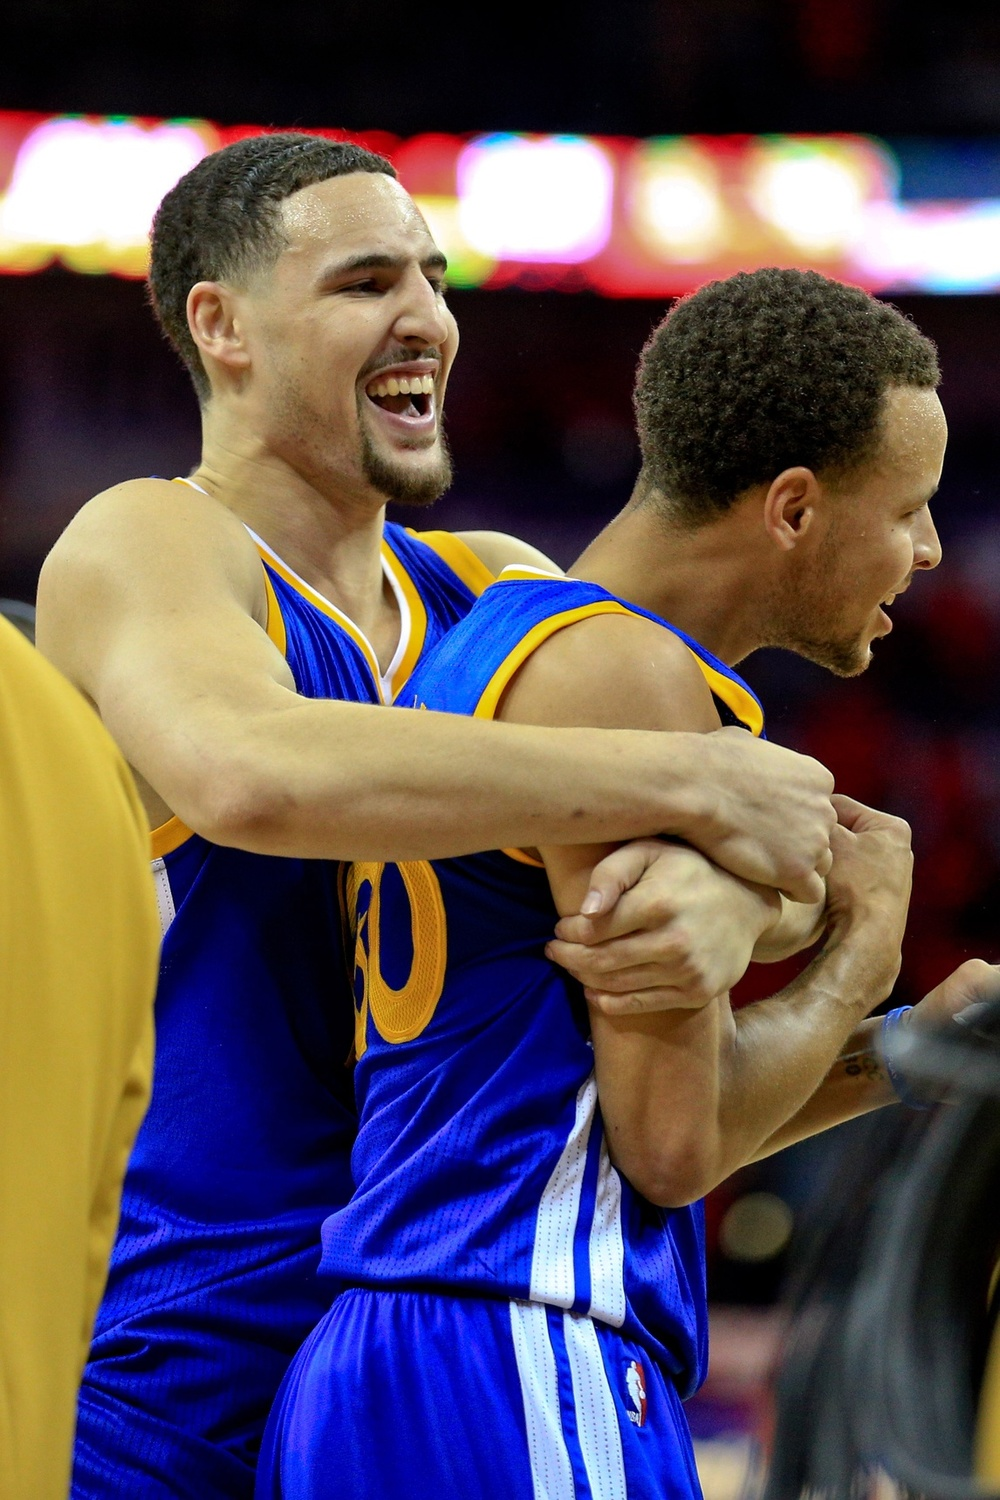 Apr 23, 2015; New Orleans, LA, USA; Golden State Warriors guard Stephen Curry (30) celebrates with guard Klay Thompson (11) following a win in overtime against the New Orleans Pelicans in game three of the first round of the NBA Playoffs at the Smoothie King Center. The Warriors defeated the Pelicans 123-119 in overtime. Mandatory Credit: Derick E. Hingle-USA TODAY Sports